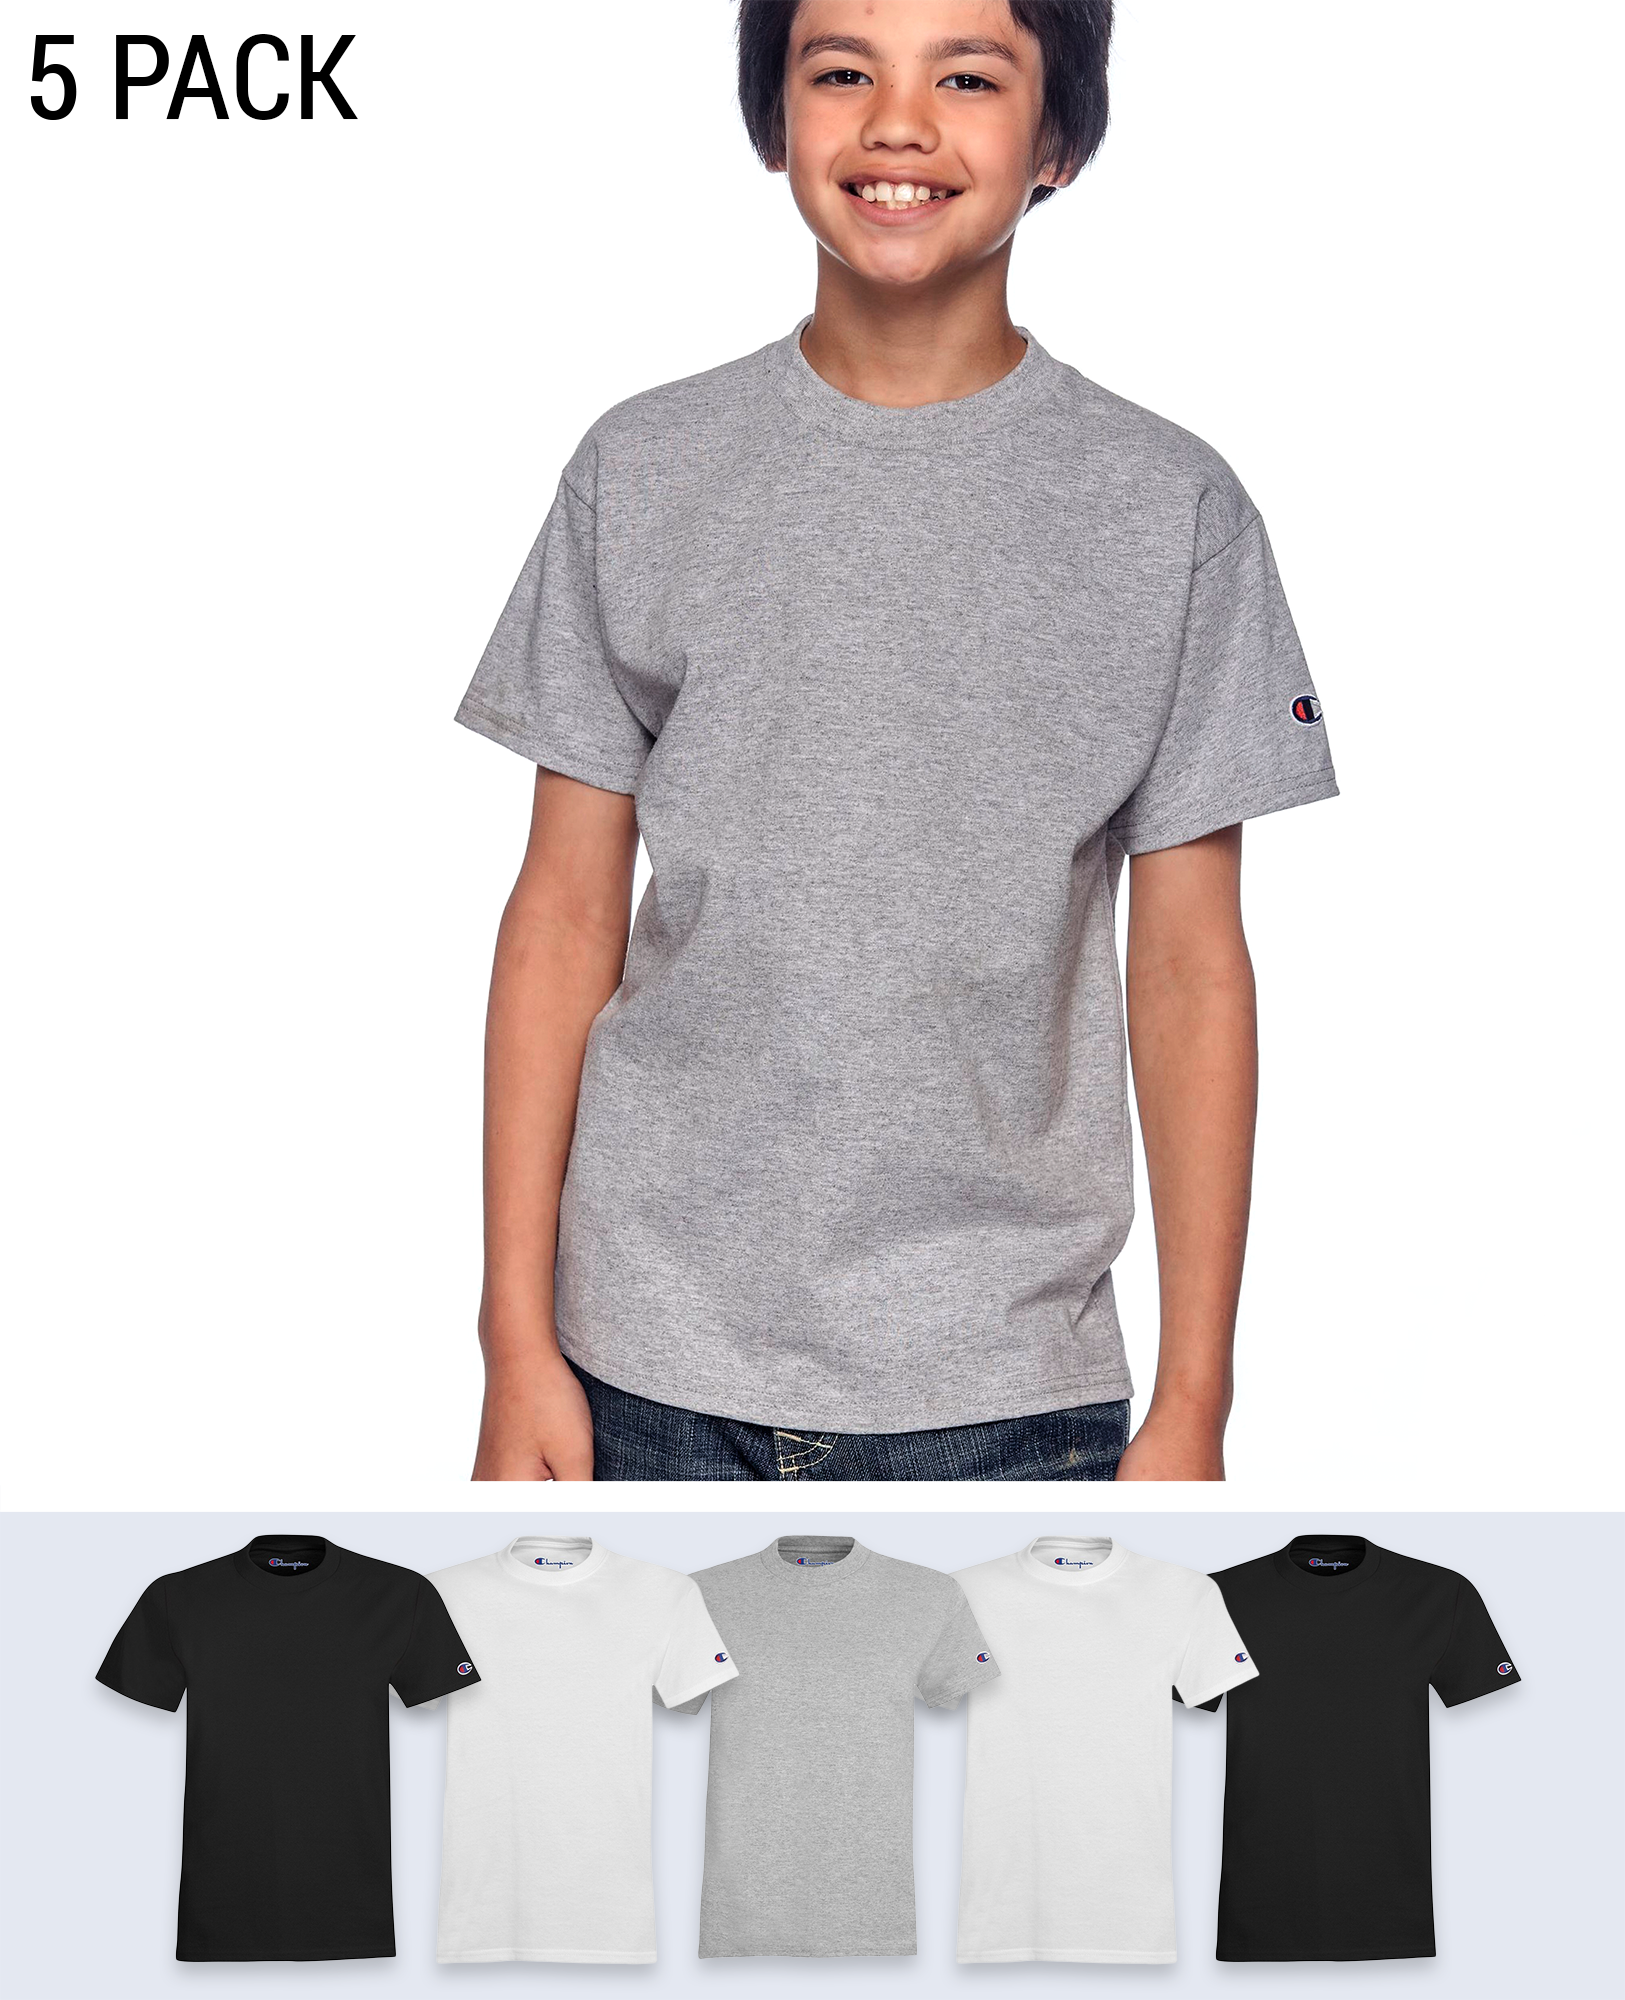 5 pack Sleeve Logo Youth's T-shirt - T-Shirts - Champion - BRANMA